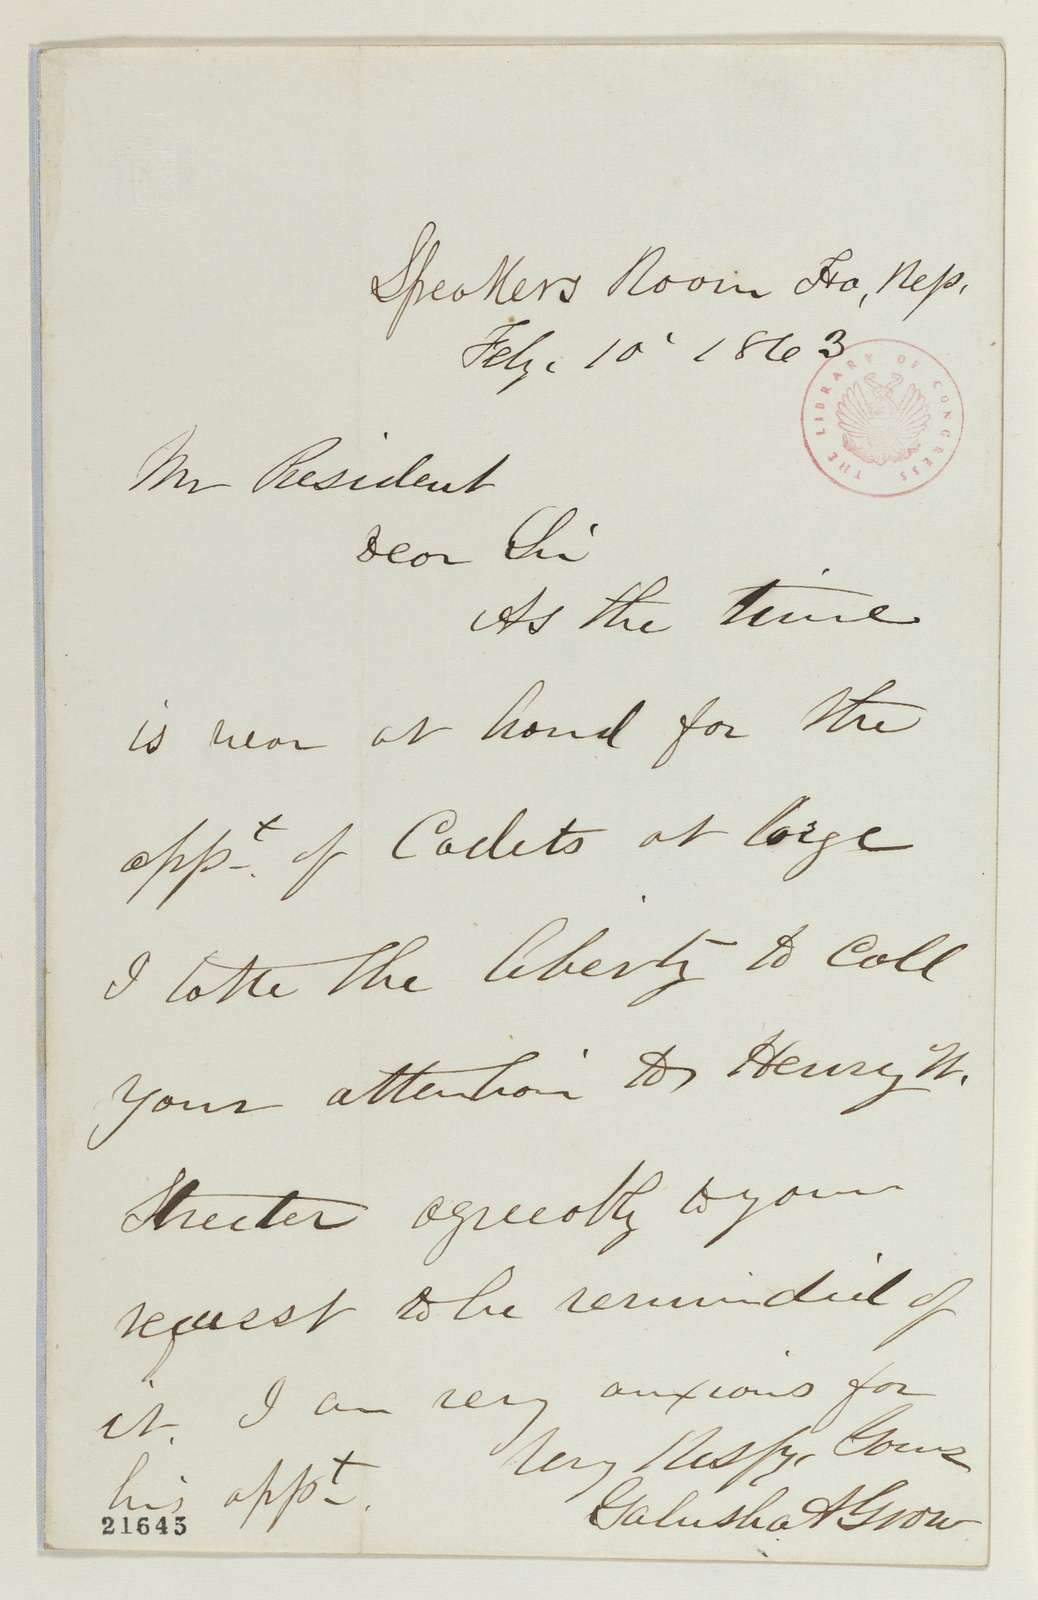 Abraham Lincoln papers: Series 1. General Correspondence. 1833-1916: Galusha A. Grow to Abraham Lincoln, Tuesday, February 10, 1863 (Appointment of cadets to West Point; endorsed by Lincoln)